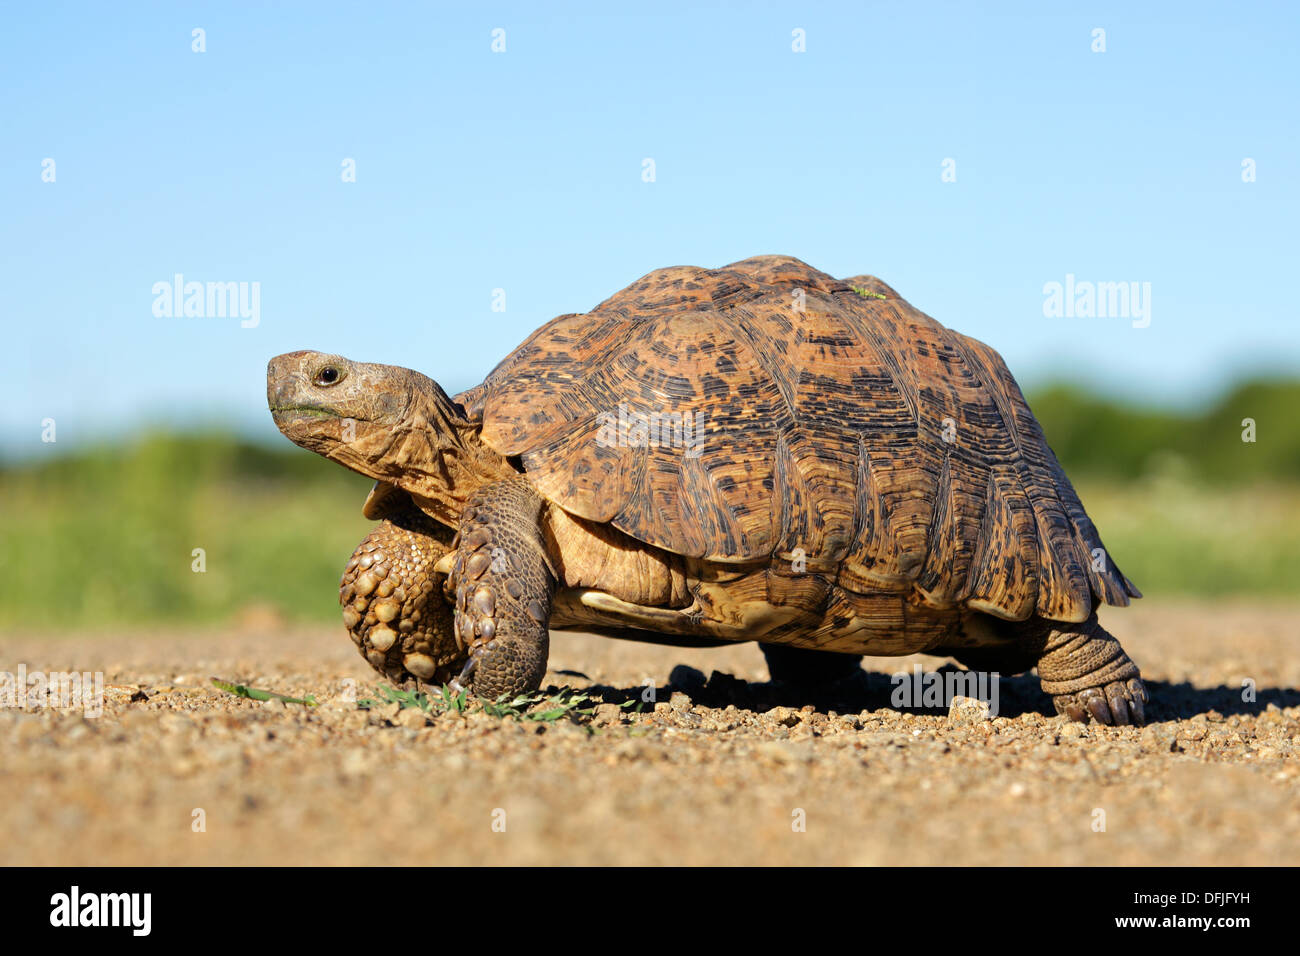 Leopard or mountain tortoise (Stigmochelys pardalis), South Africa - Stock Image